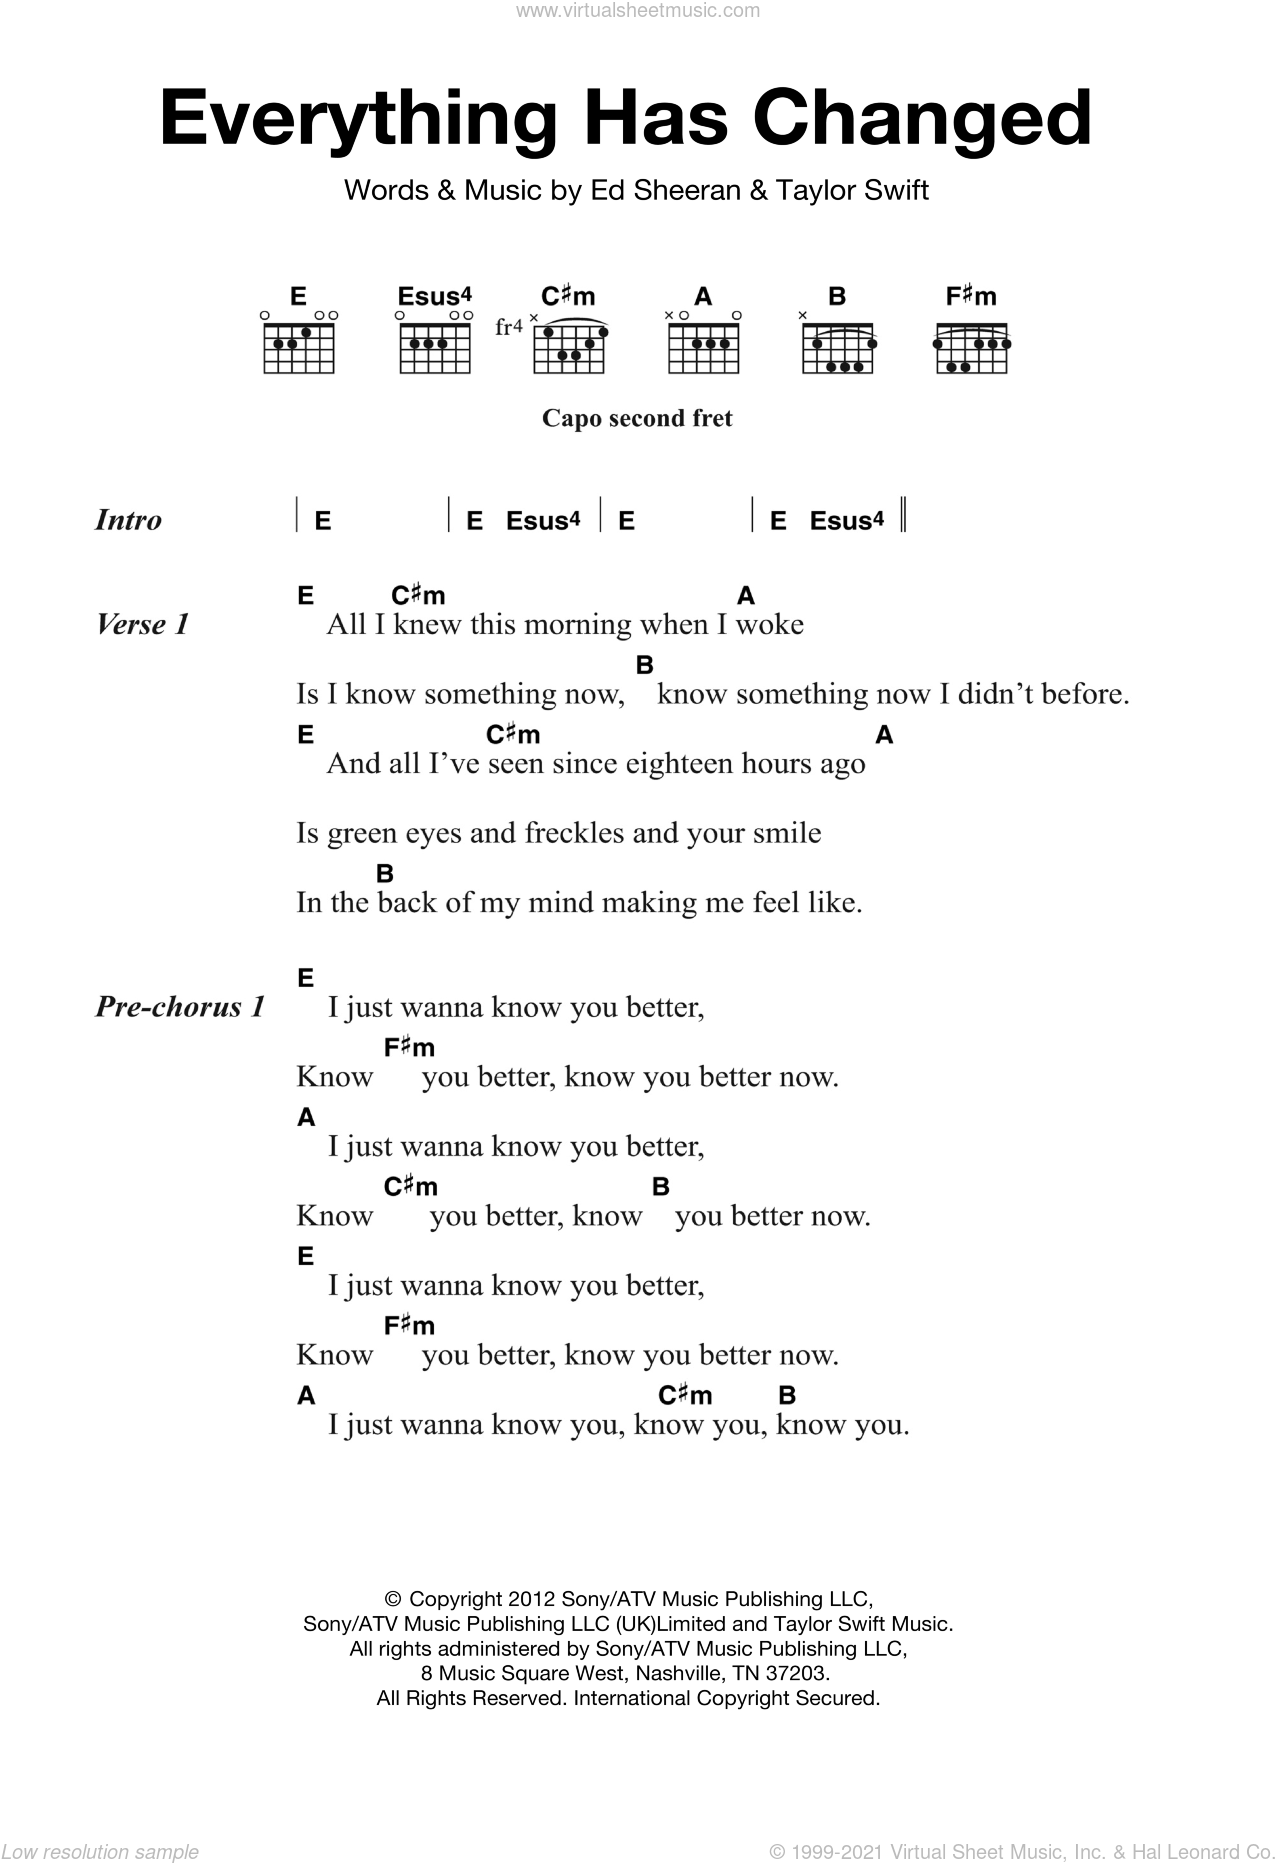 Everything Has Changed sheet music for guitar (chords) by Ed Sheeran and Taylor Swift, intermediate guitar (chords). Score Image Preview.